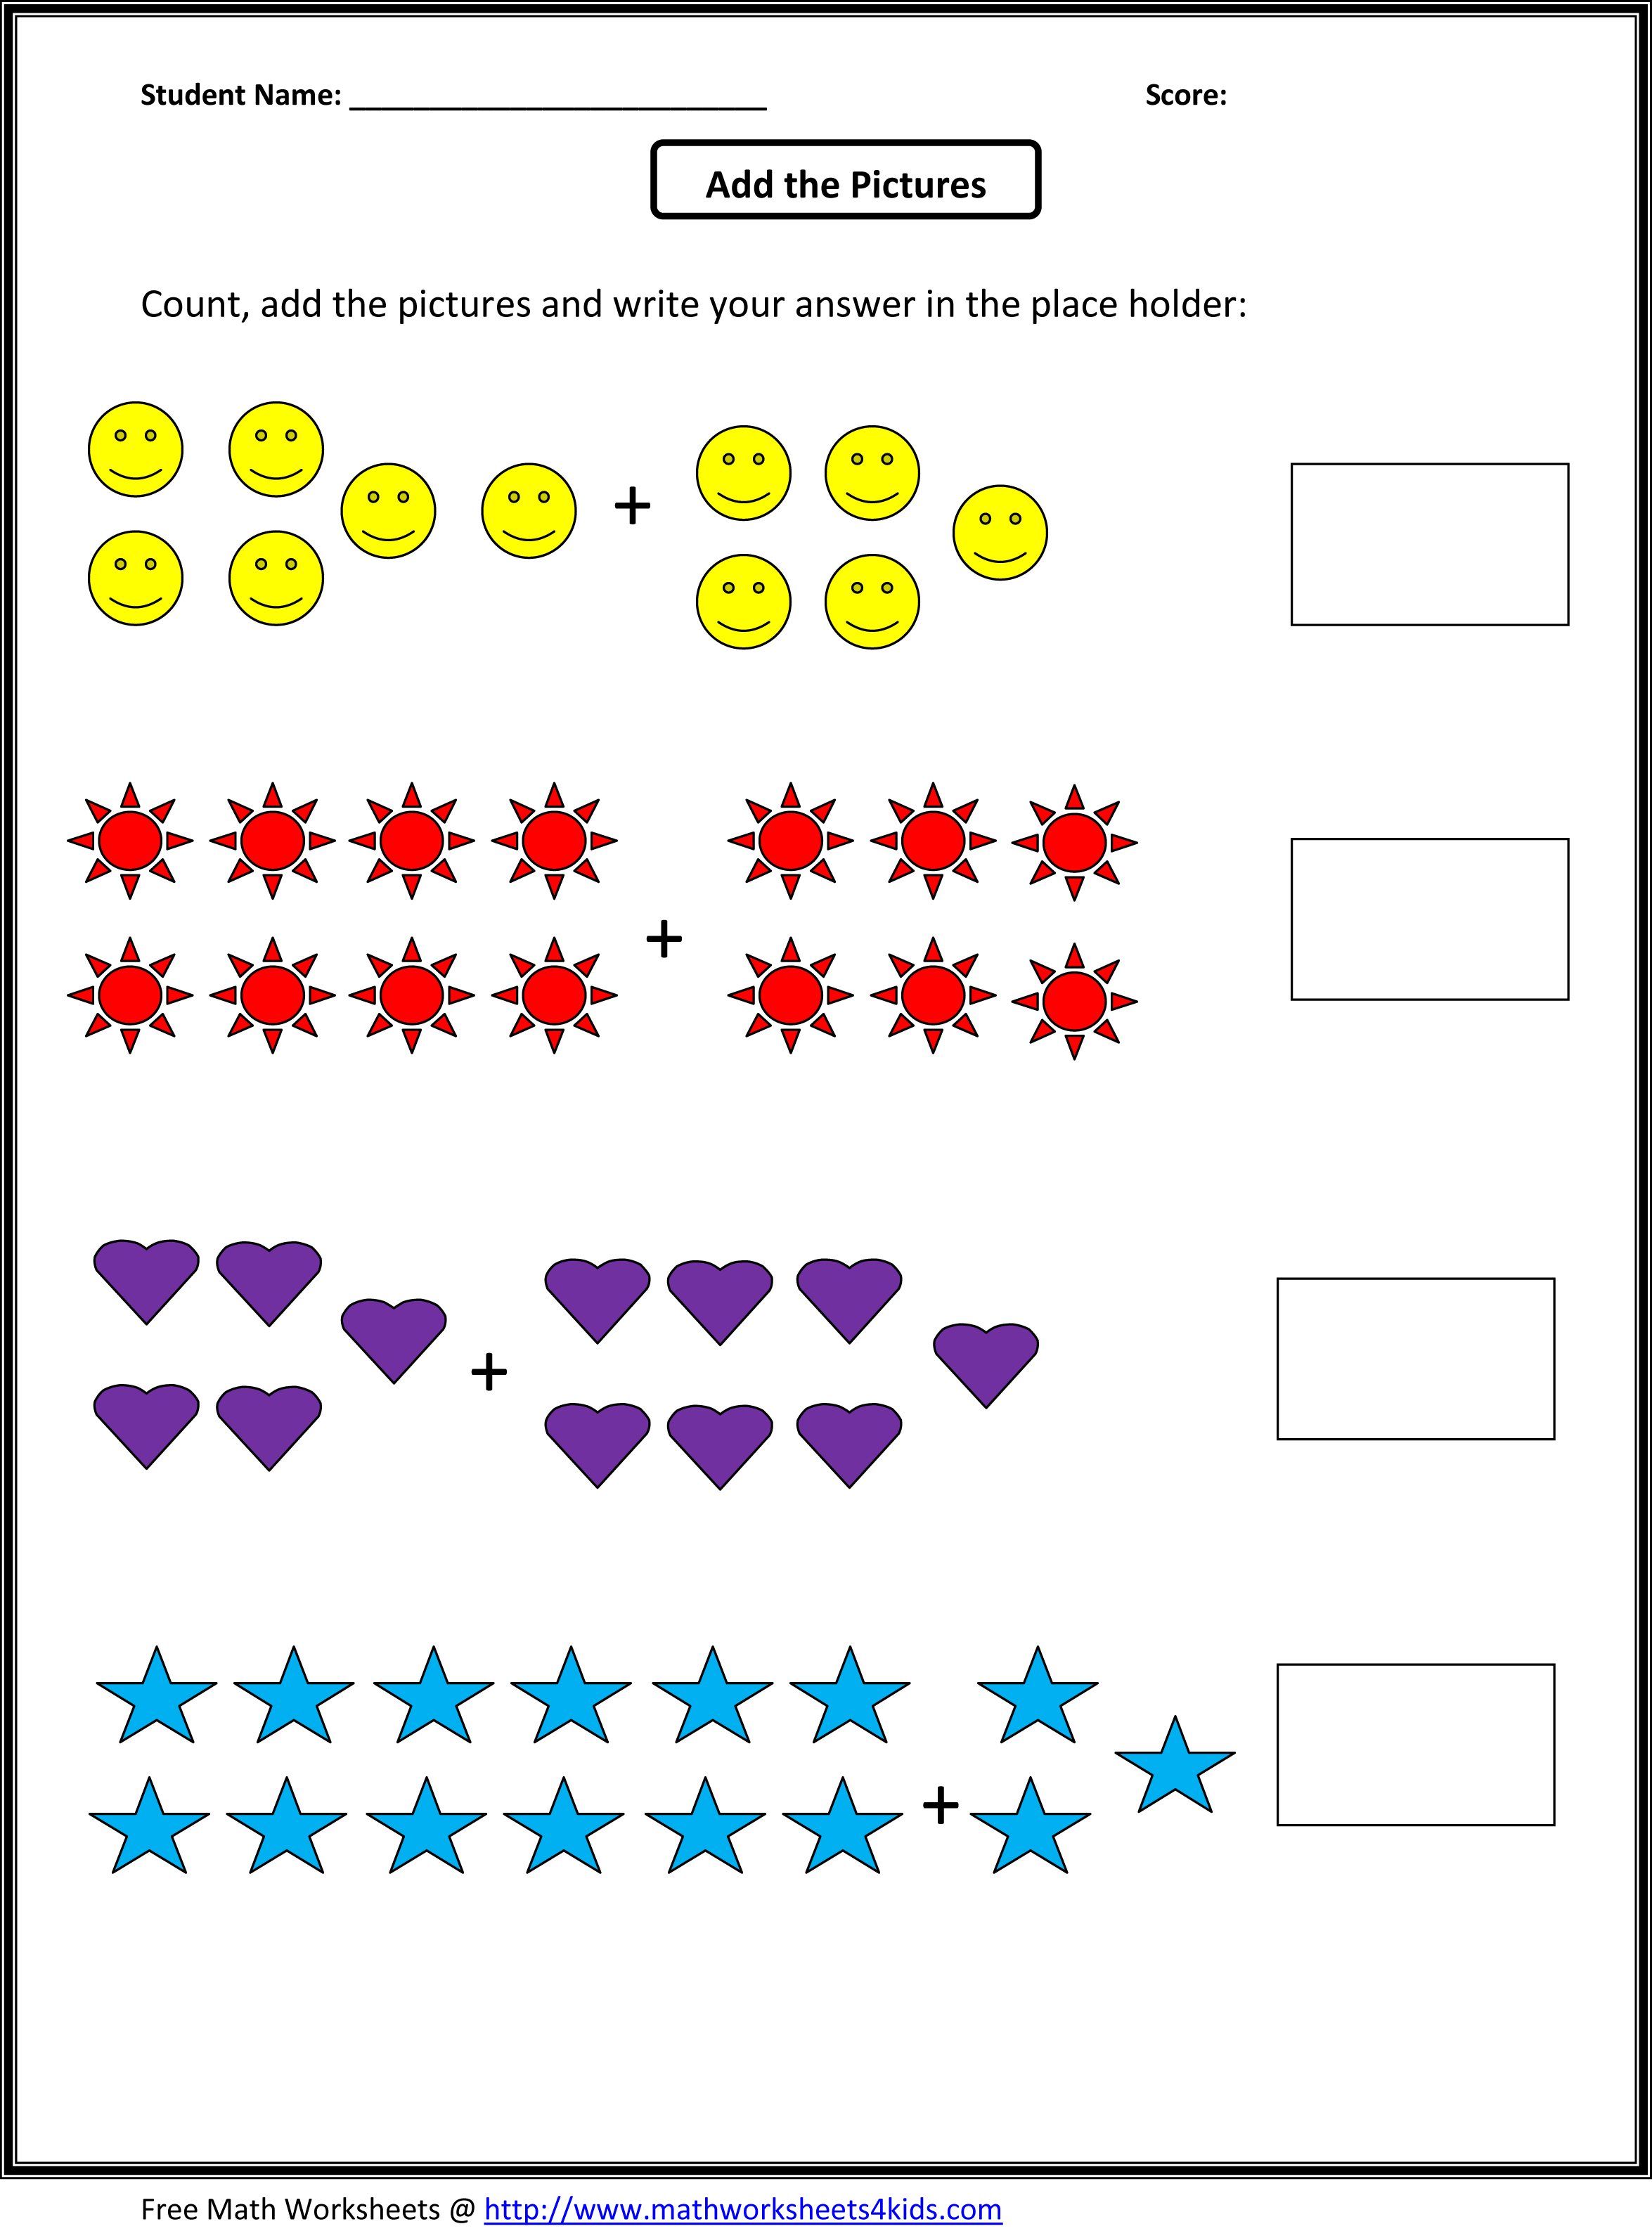 Weirdmailus  Personable Grade  Maths Worksheet  Reocurent With Fascinating Math Worksheets For St Grade Free  Reocurent With Nice Th Grade Worksheets Also Evidence Of Evolution Worksheet Answers In Addition W Worksheet And Math Worksheet Generator As Well As Properties Of Exponents Worksheet Additionally Punctuation Worksheets From Reocurentcom With Weirdmailus  Fascinating Grade  Maths Worksheet  Reocurent With Nice Math Worksheets For St Grade Free  Reocurent And Personable Th Grade Worksheets Also Evidence Of Evolution Worksheet Answers In Addition W Worksheet From Reocurentcom